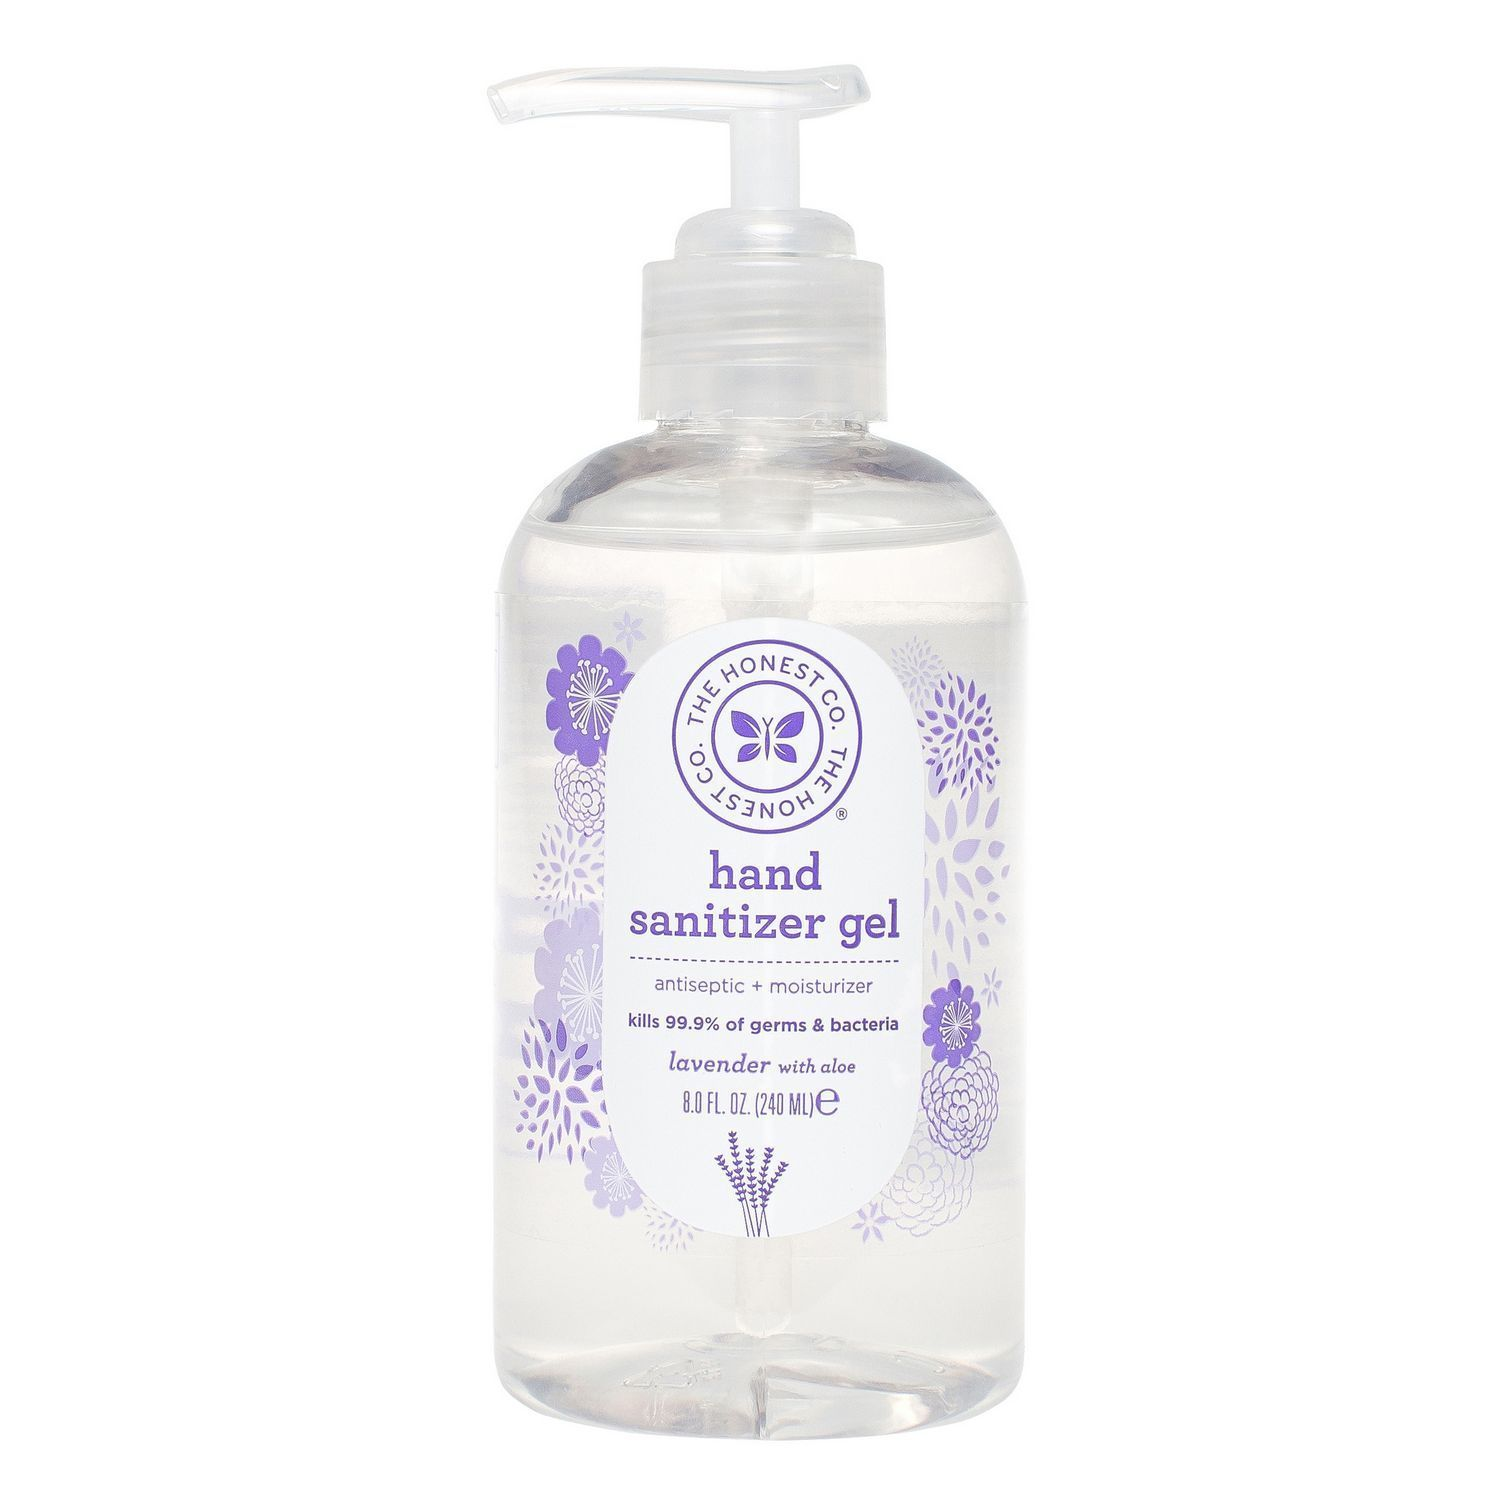 The Honest Company Honest Hand Sanitizer 8oz Lavender Hand